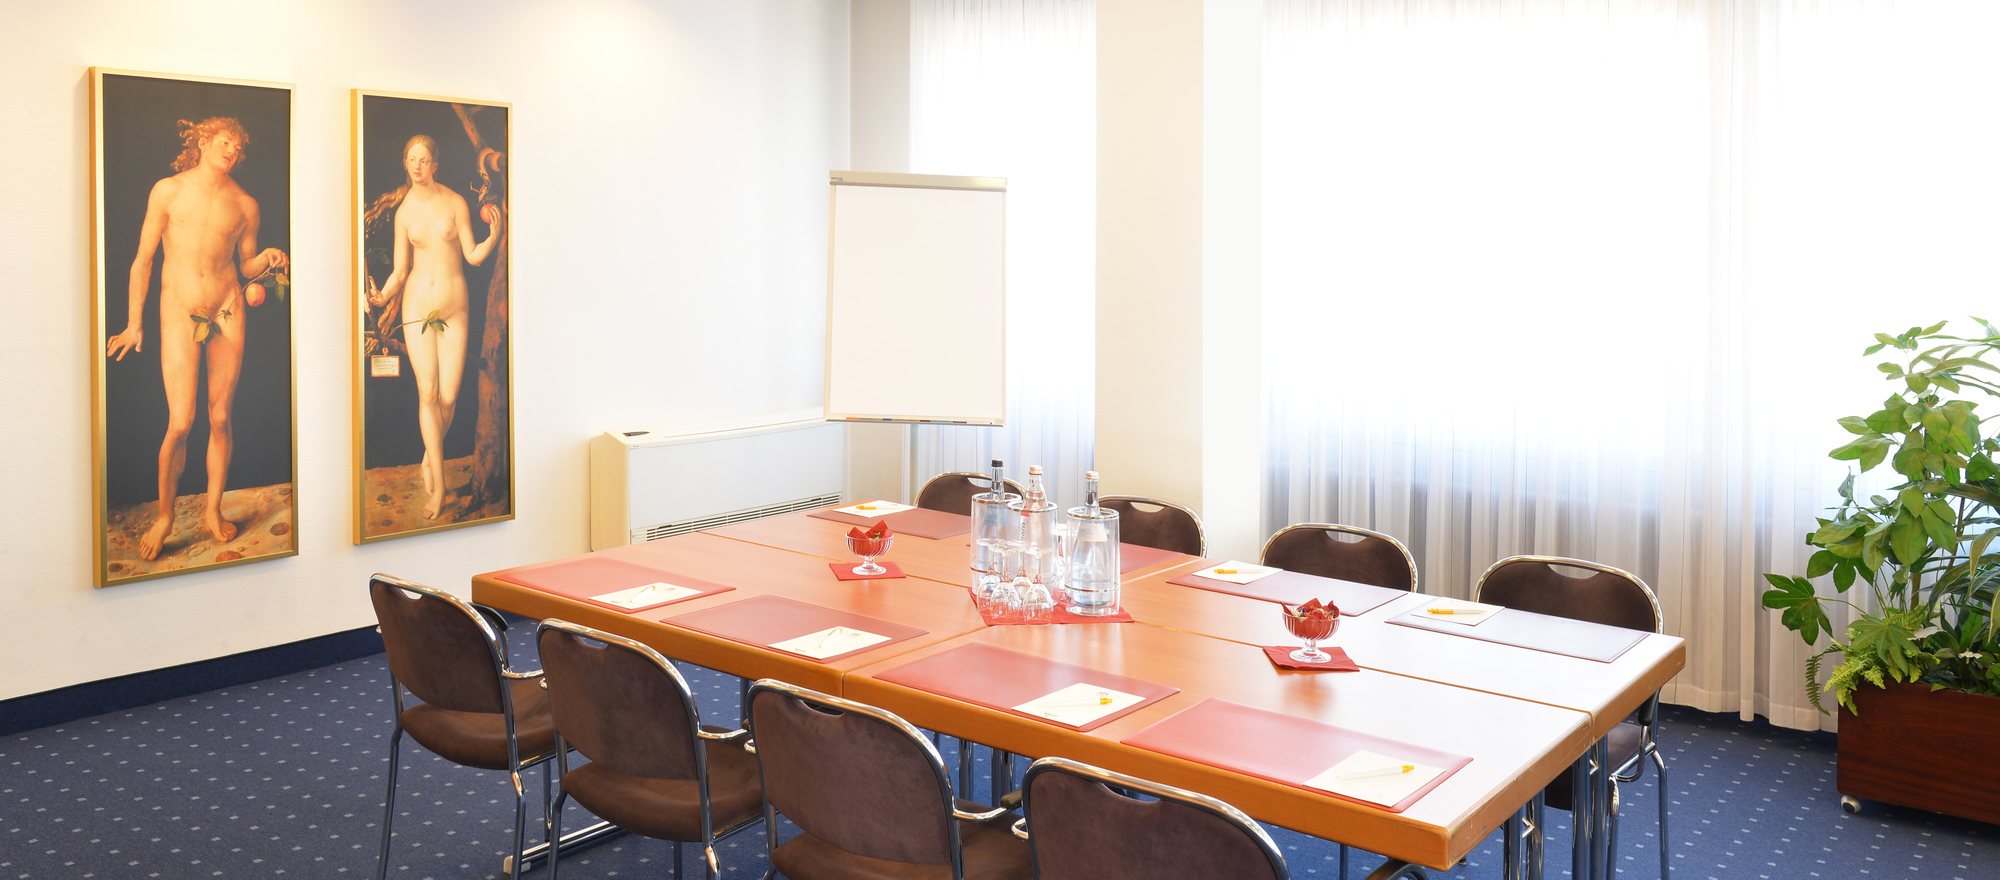 Small conference room at the Ringhotel Loew's Merkur, 4 stars Hotel in Franconia